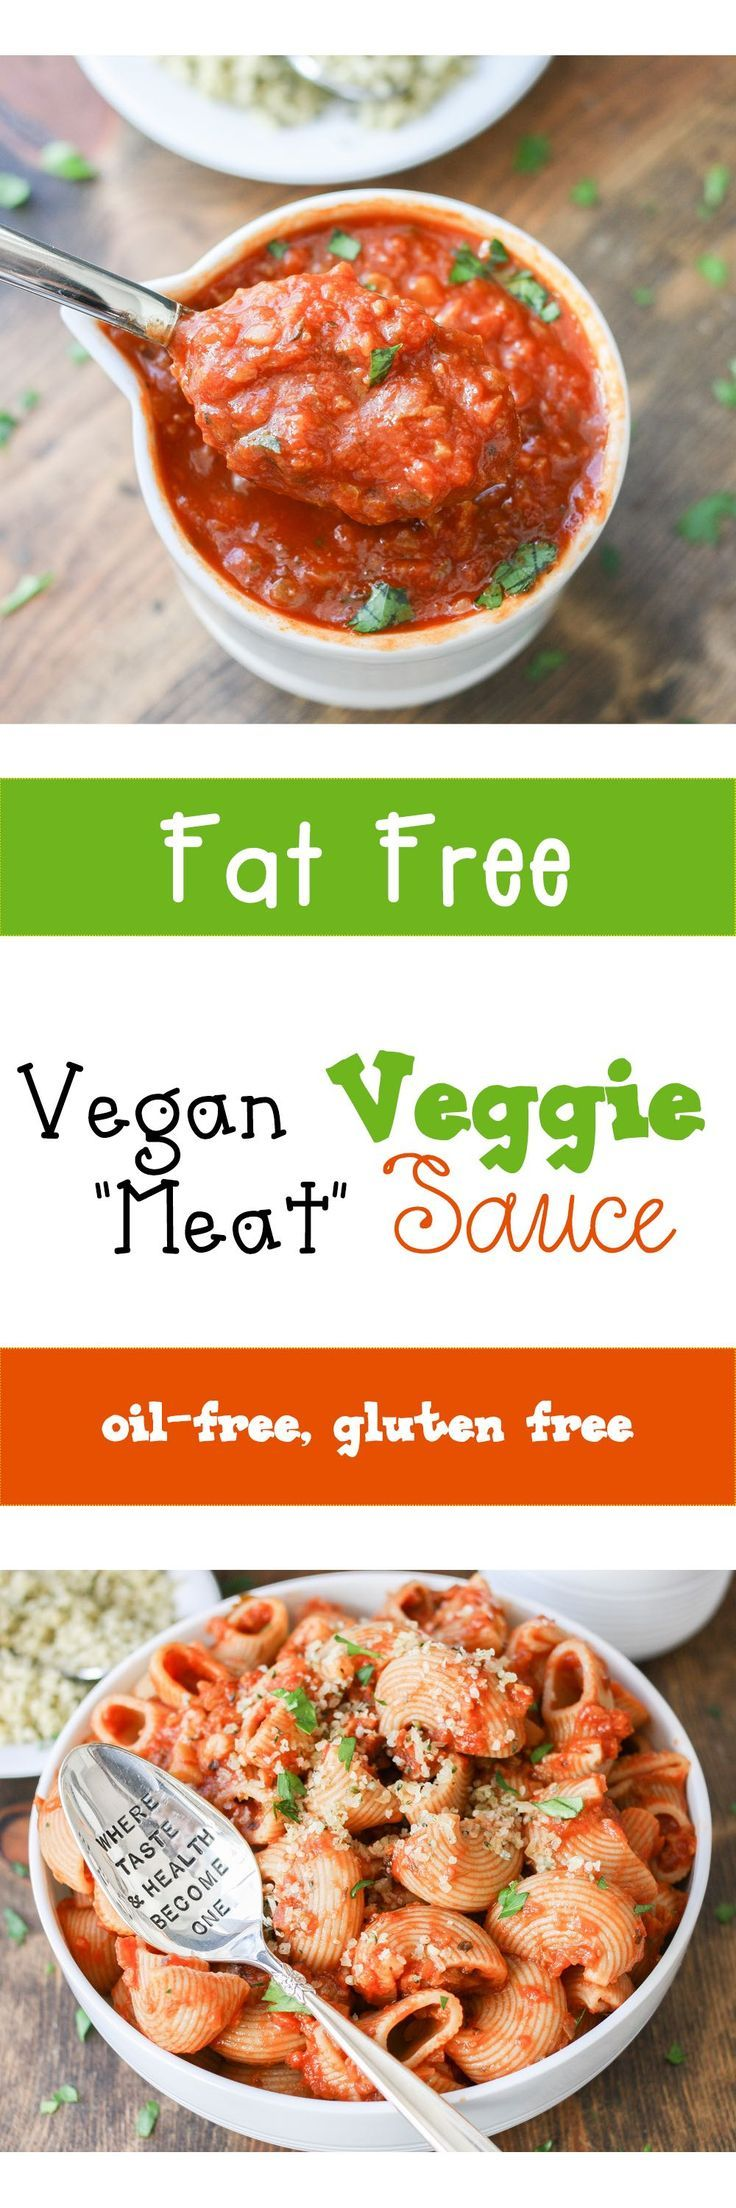 "Vegan Veggie Filled ""Meat"" Sauce and Pasta 